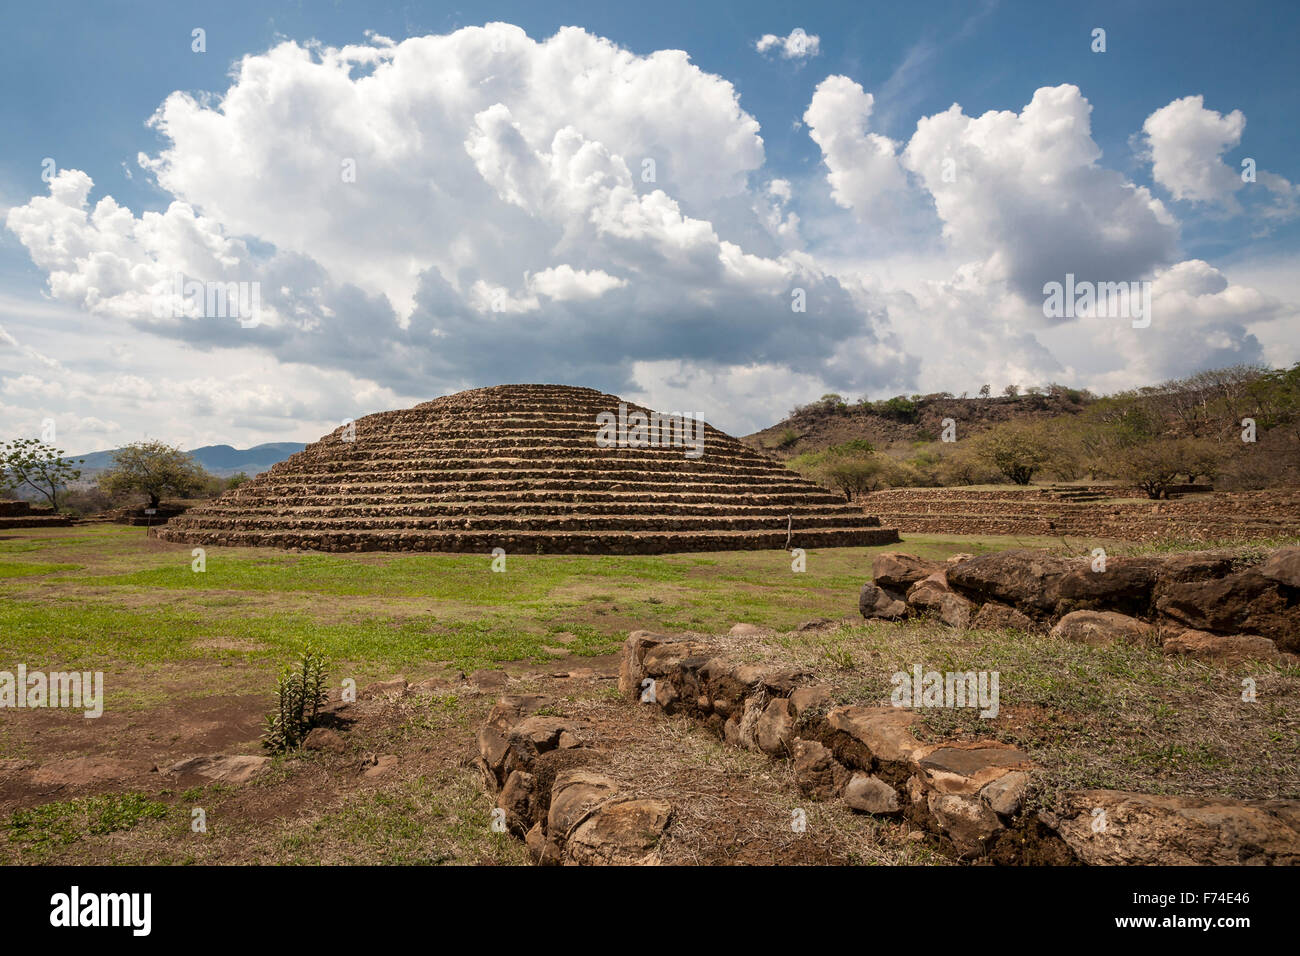 The Guachimontones pre-Columbian site with its unique circular pyramid near the town of Teuchitlan, Jalisco, Mexico. - Stock Image